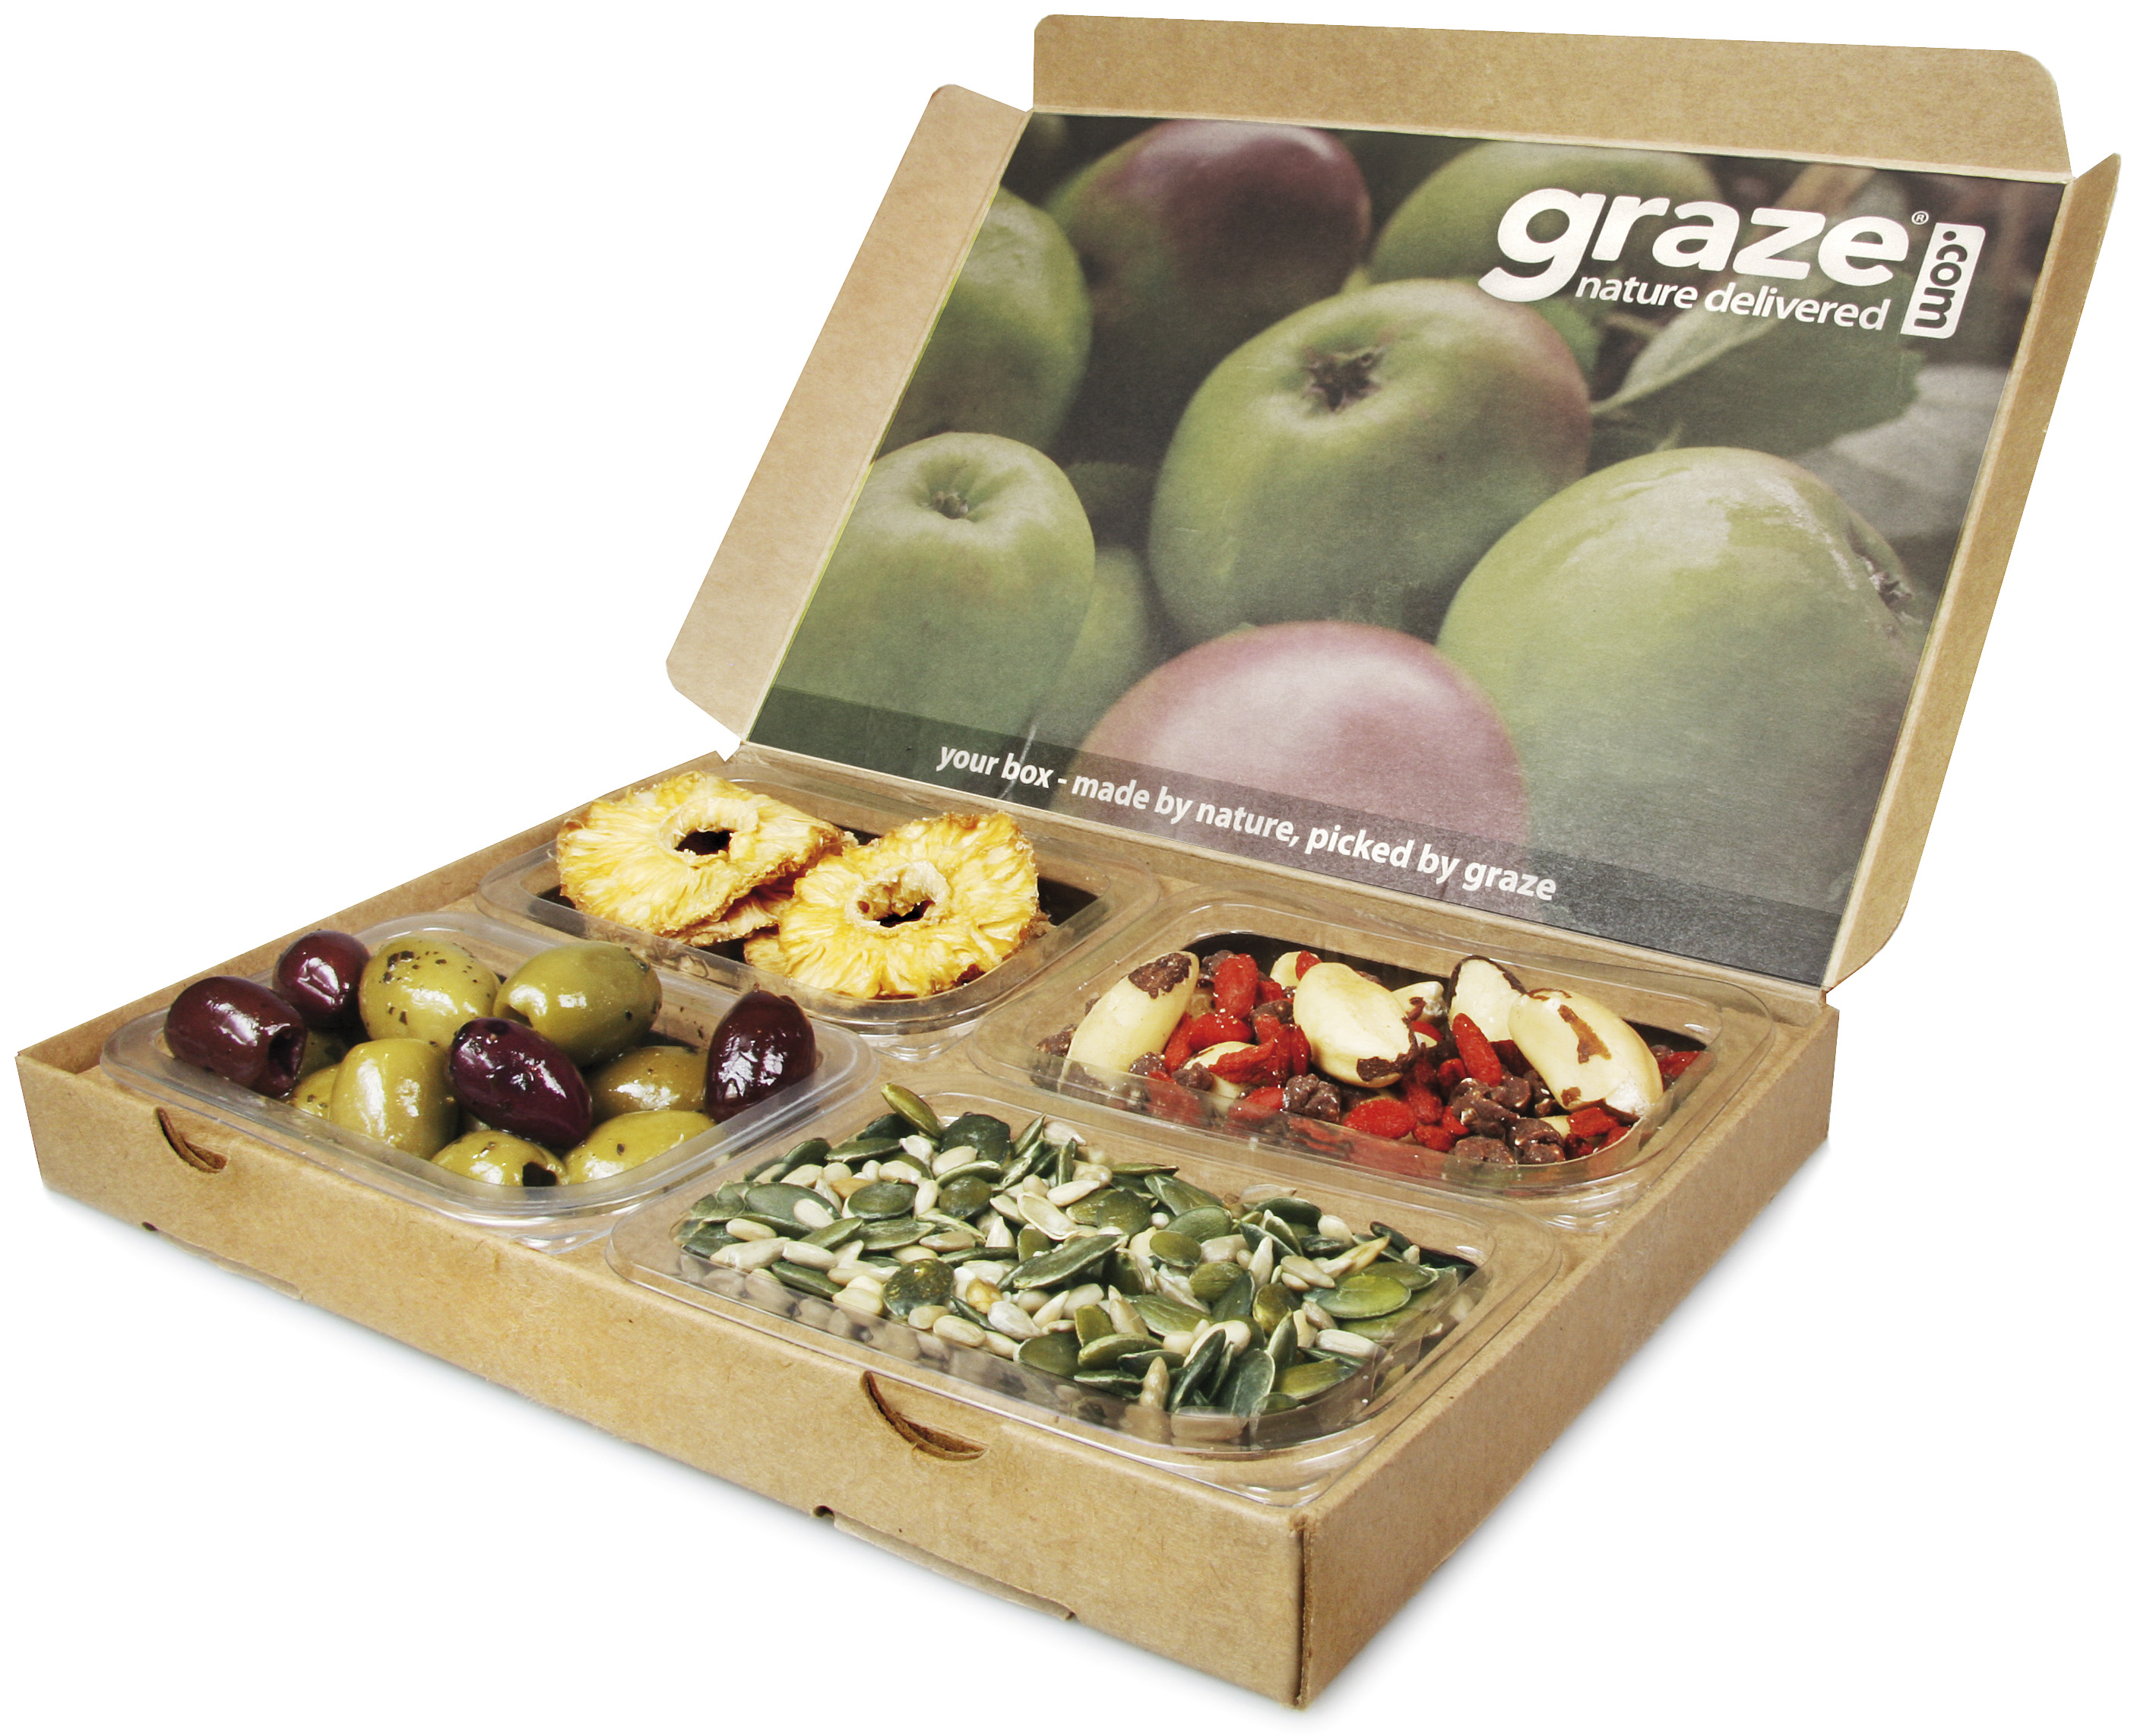 Is Graze Food Good For You